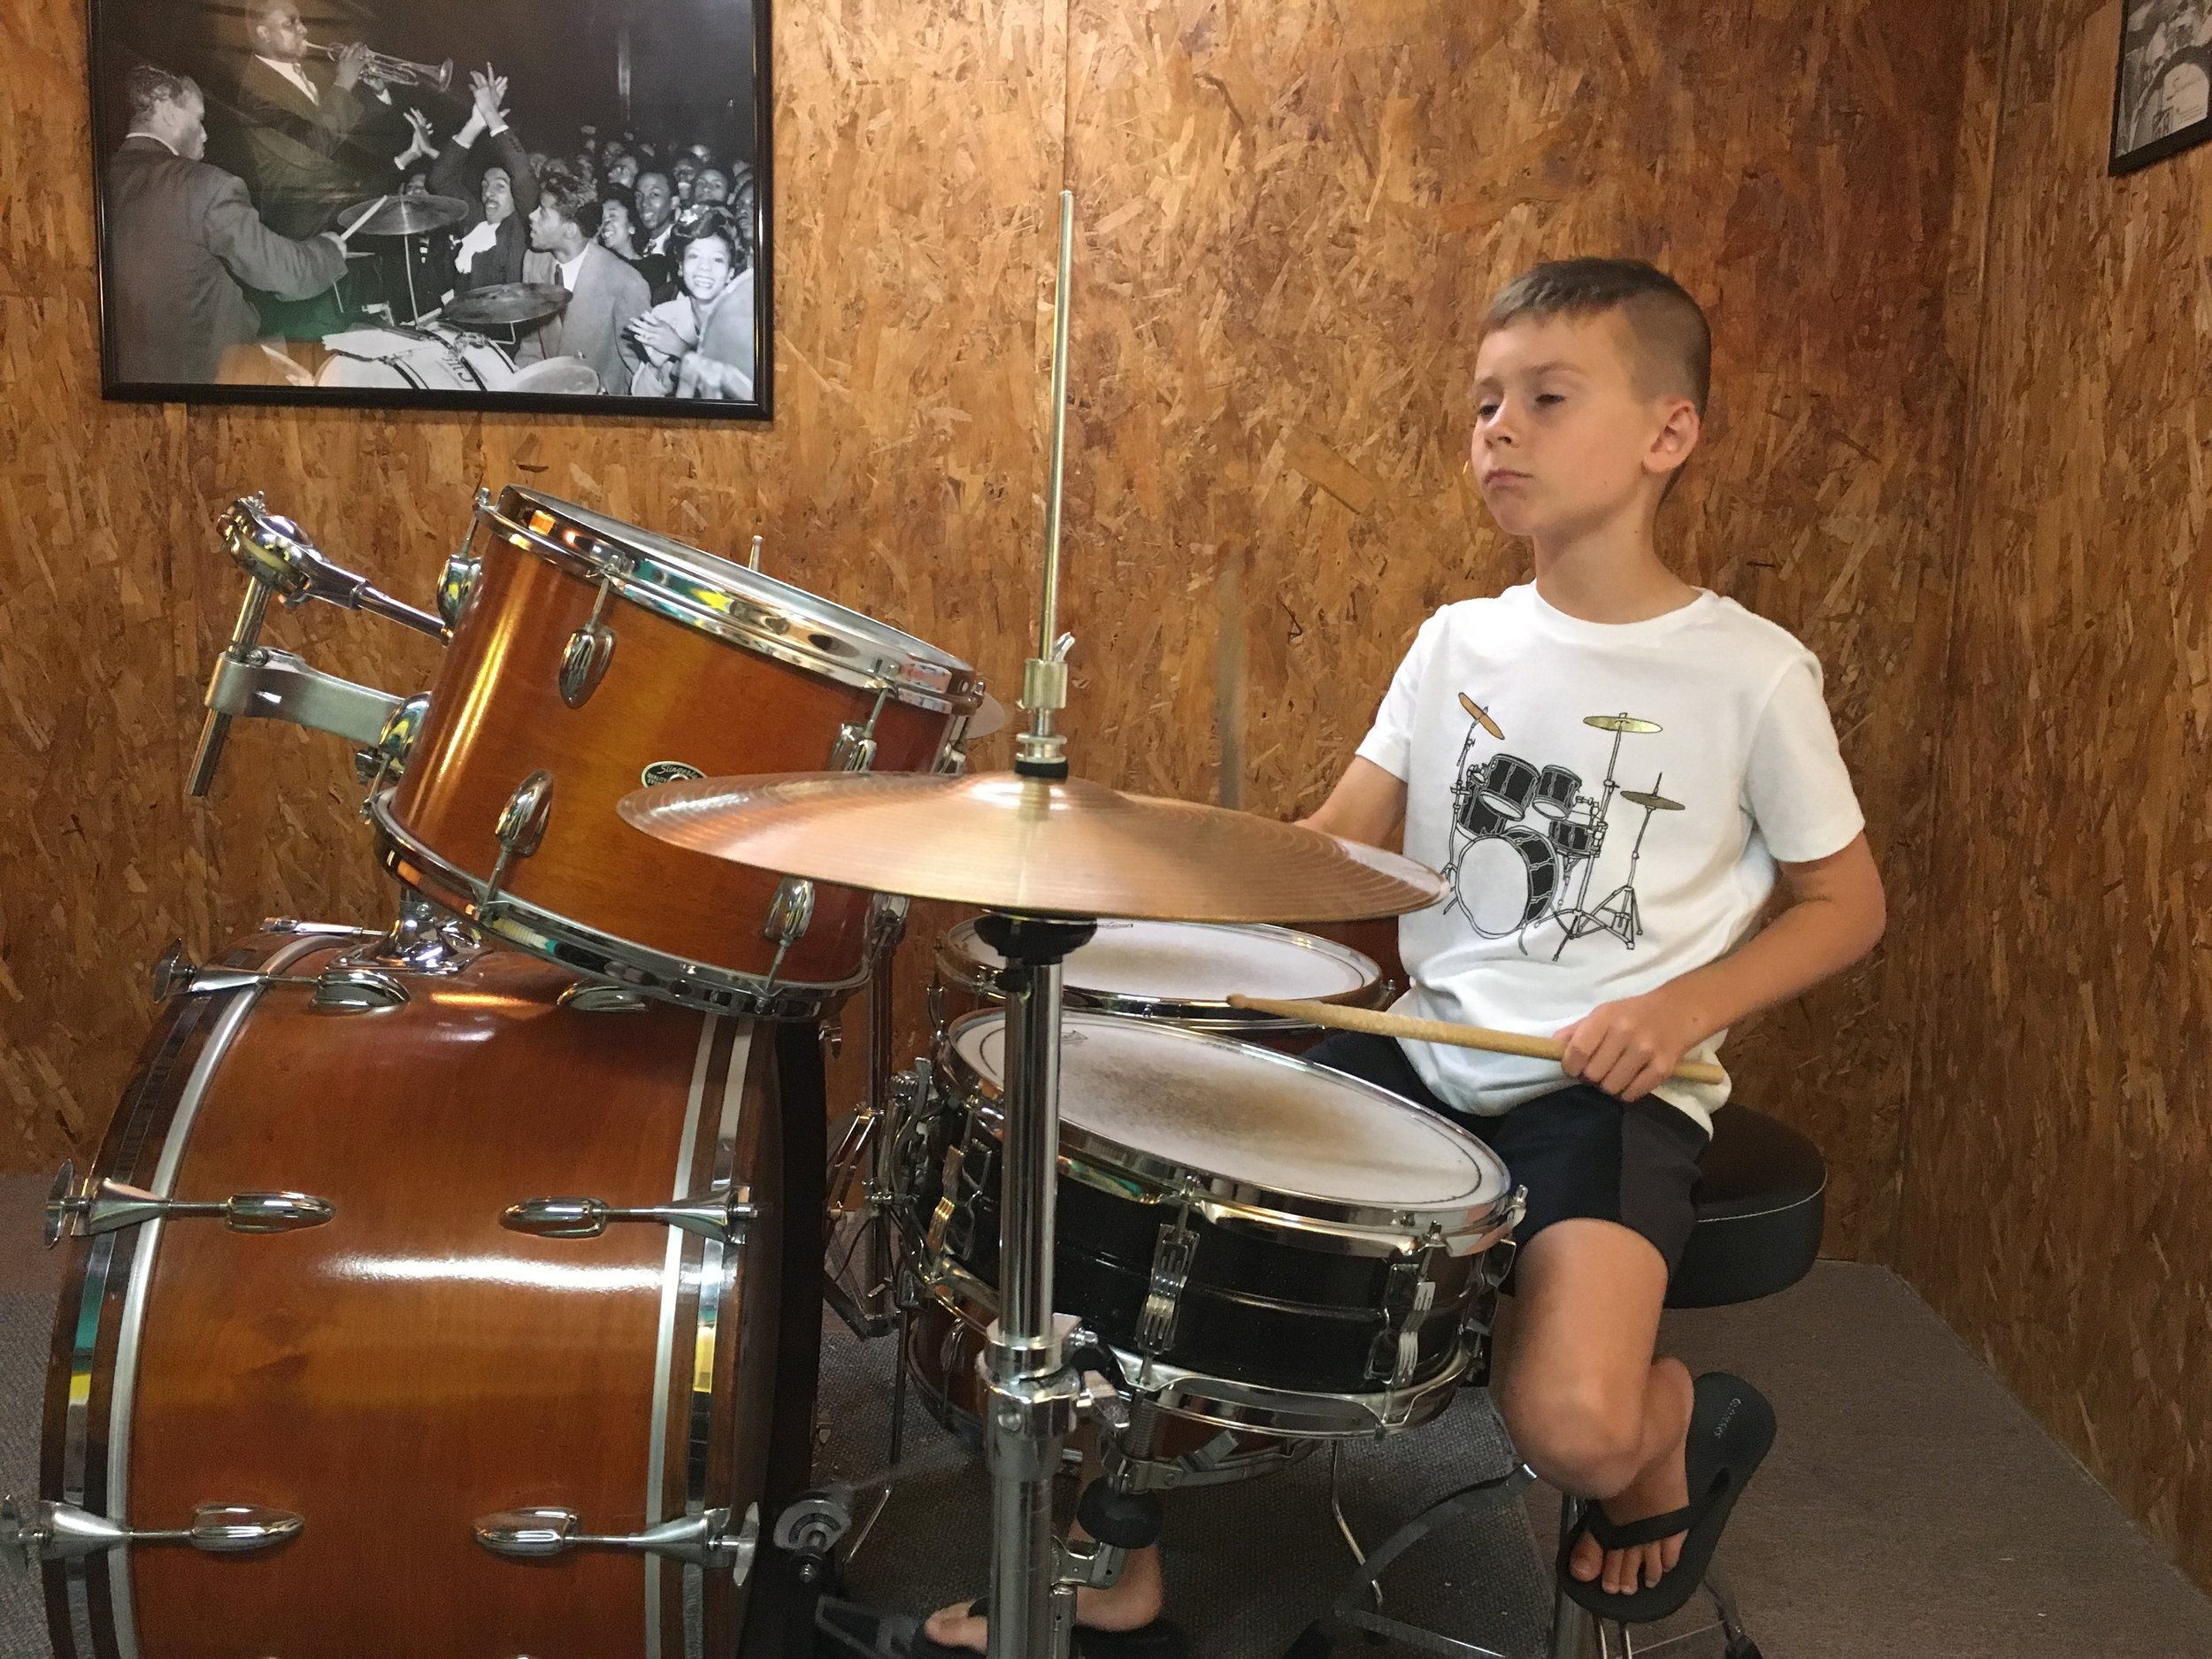 One of Rick's students Judah rocking out in Rick's home studio